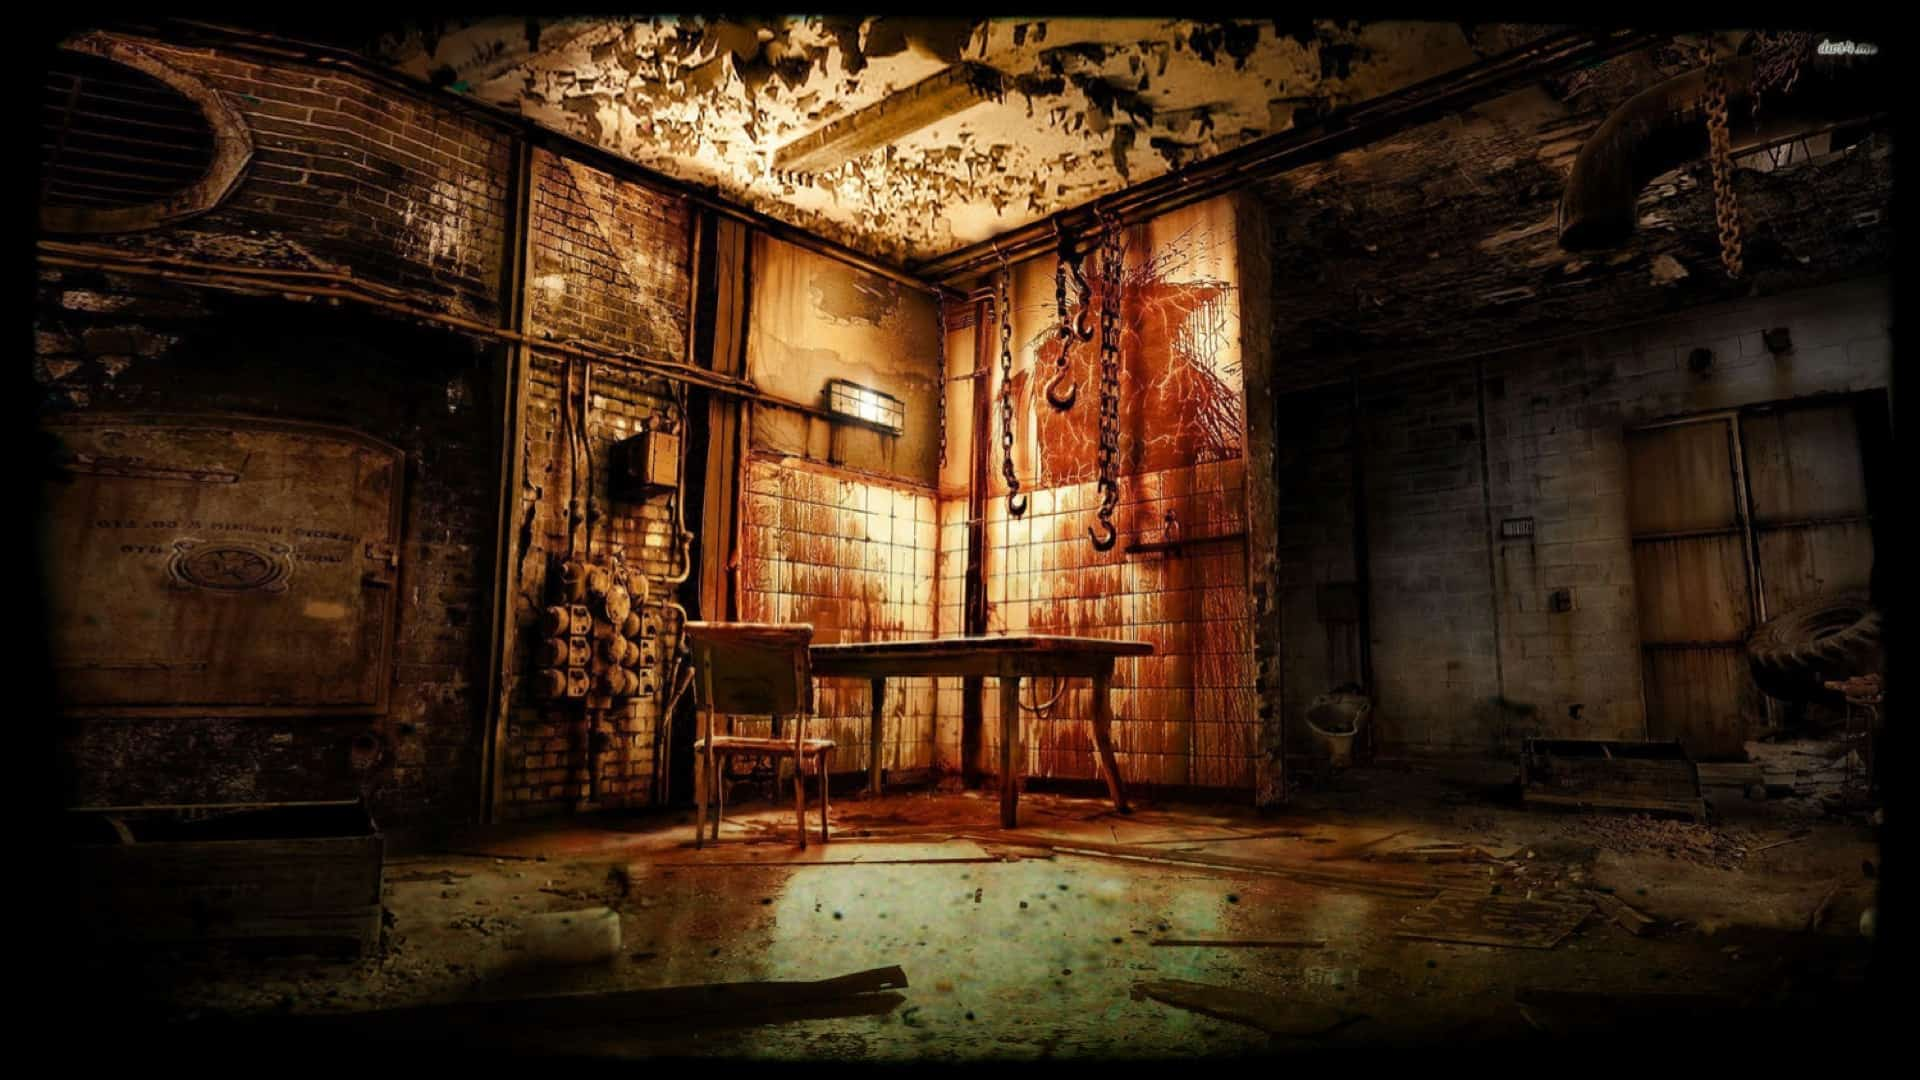 The view is that of the corner of a room, supposedly that of a slaughter house. The floors and walls are covered in blood. There is detritus everywhere and numerous metal chains and hooks.